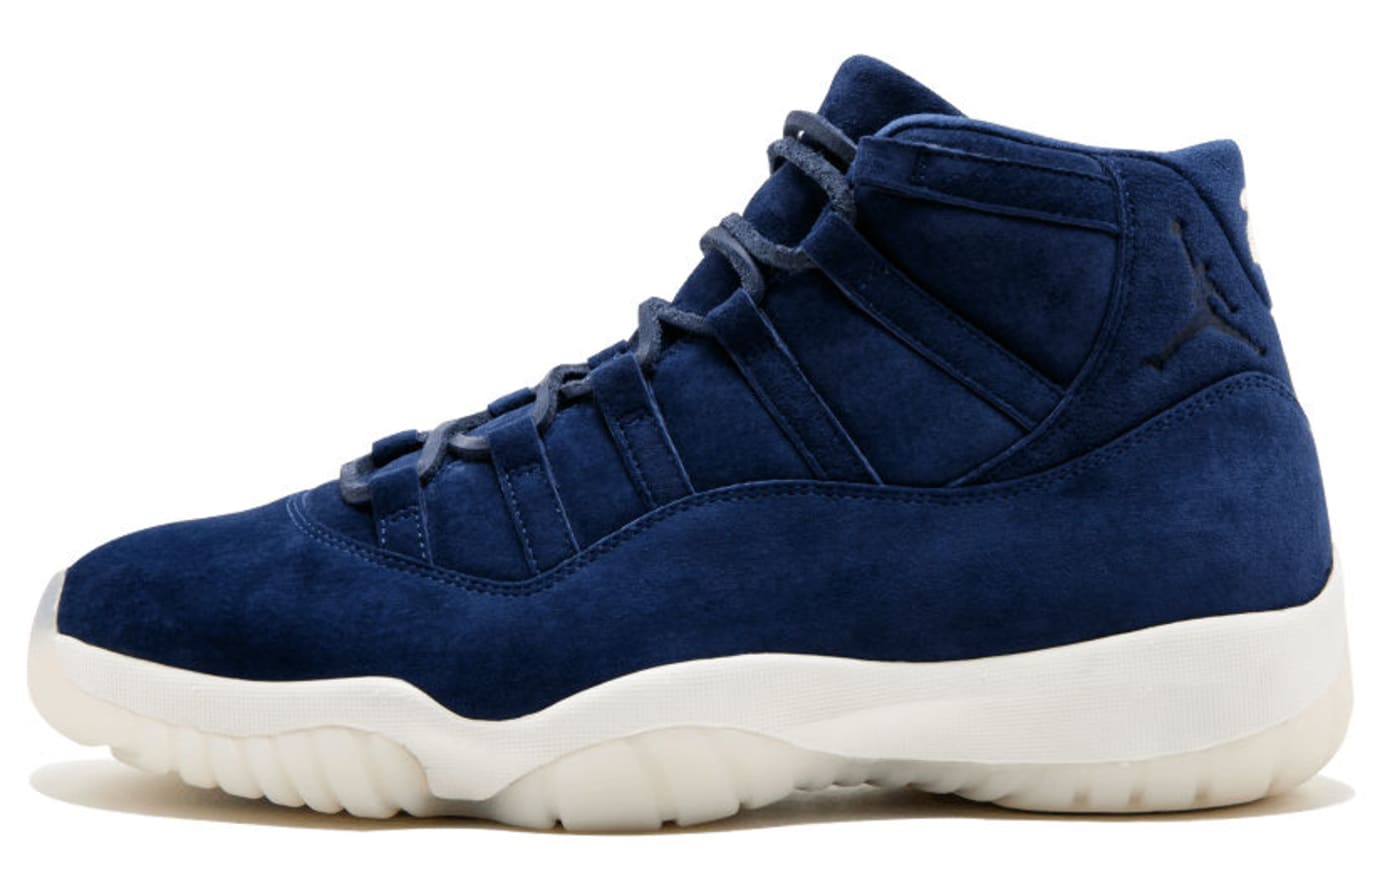 401e0c40a1f Derek Jeter Air Jordan 11 XI Navy Blue Suede $40,000 | Sole Collector